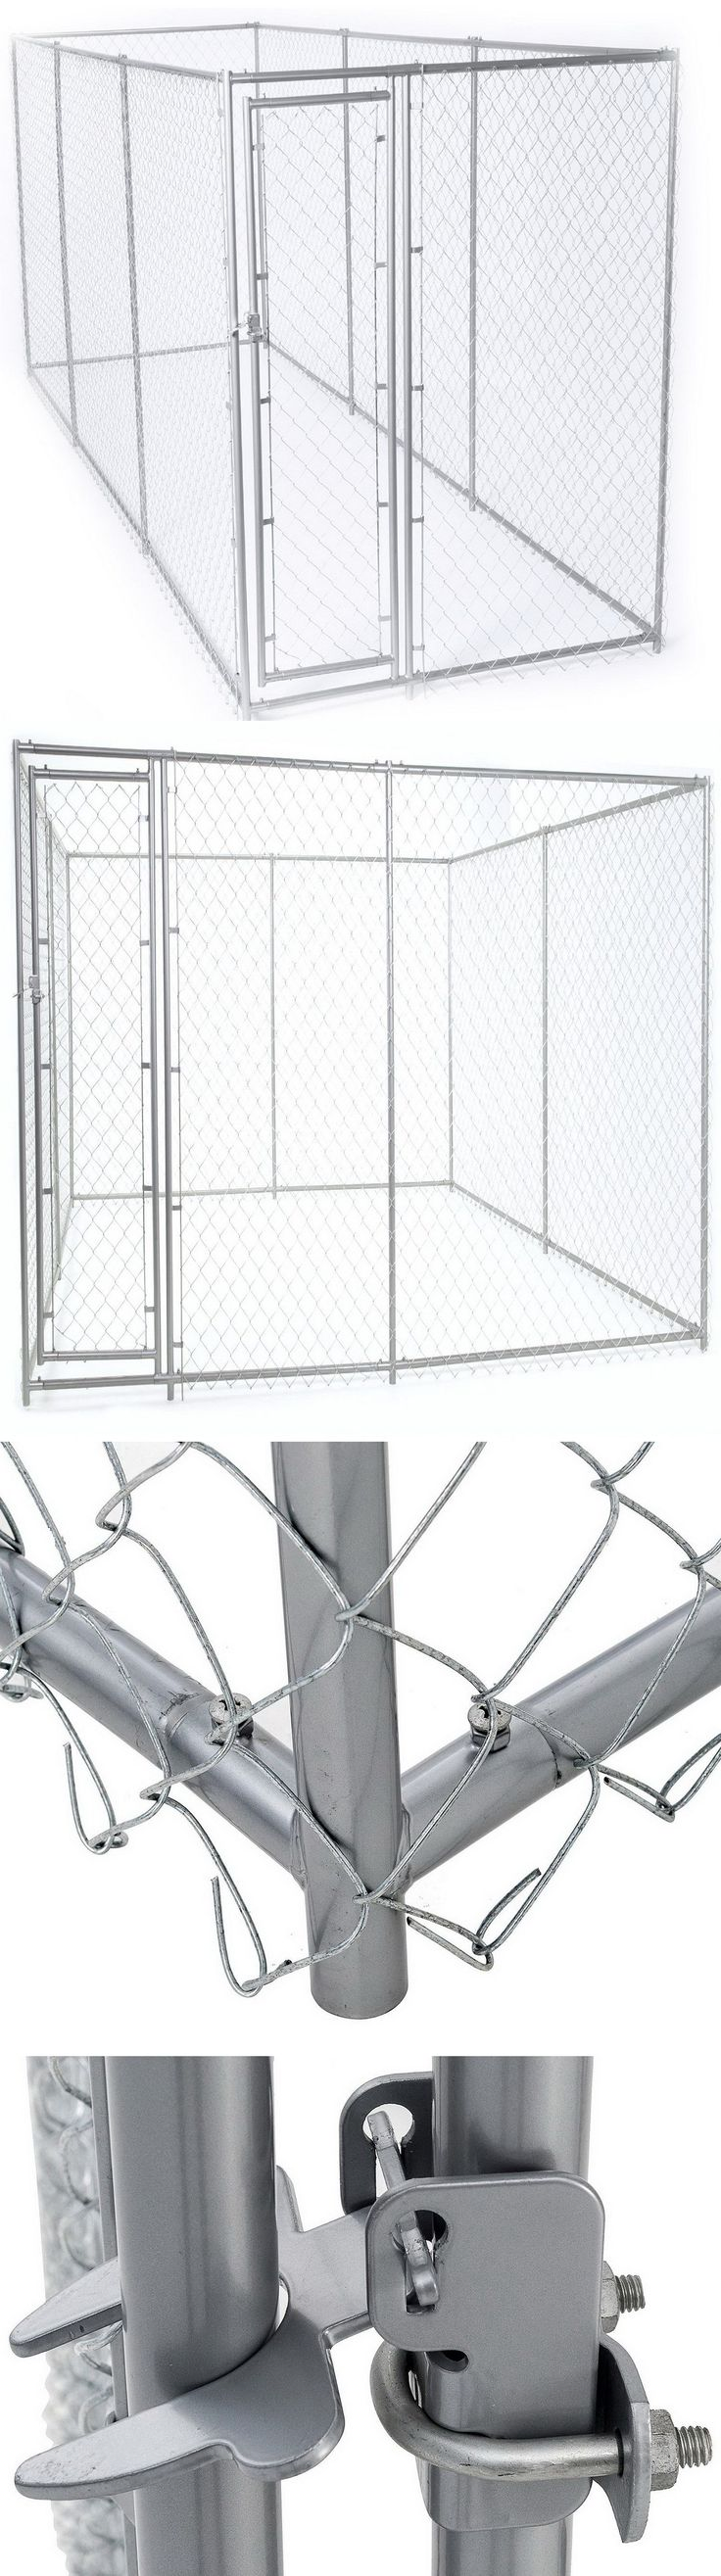 Fences and Exercise Pens 20748: New Outdoor Galvanized Chain Link Dog Kennel Steel Frame 15 X 5 Or 10 X 10 -> BUY IT NOW ONLY: $298.98 on eBay!